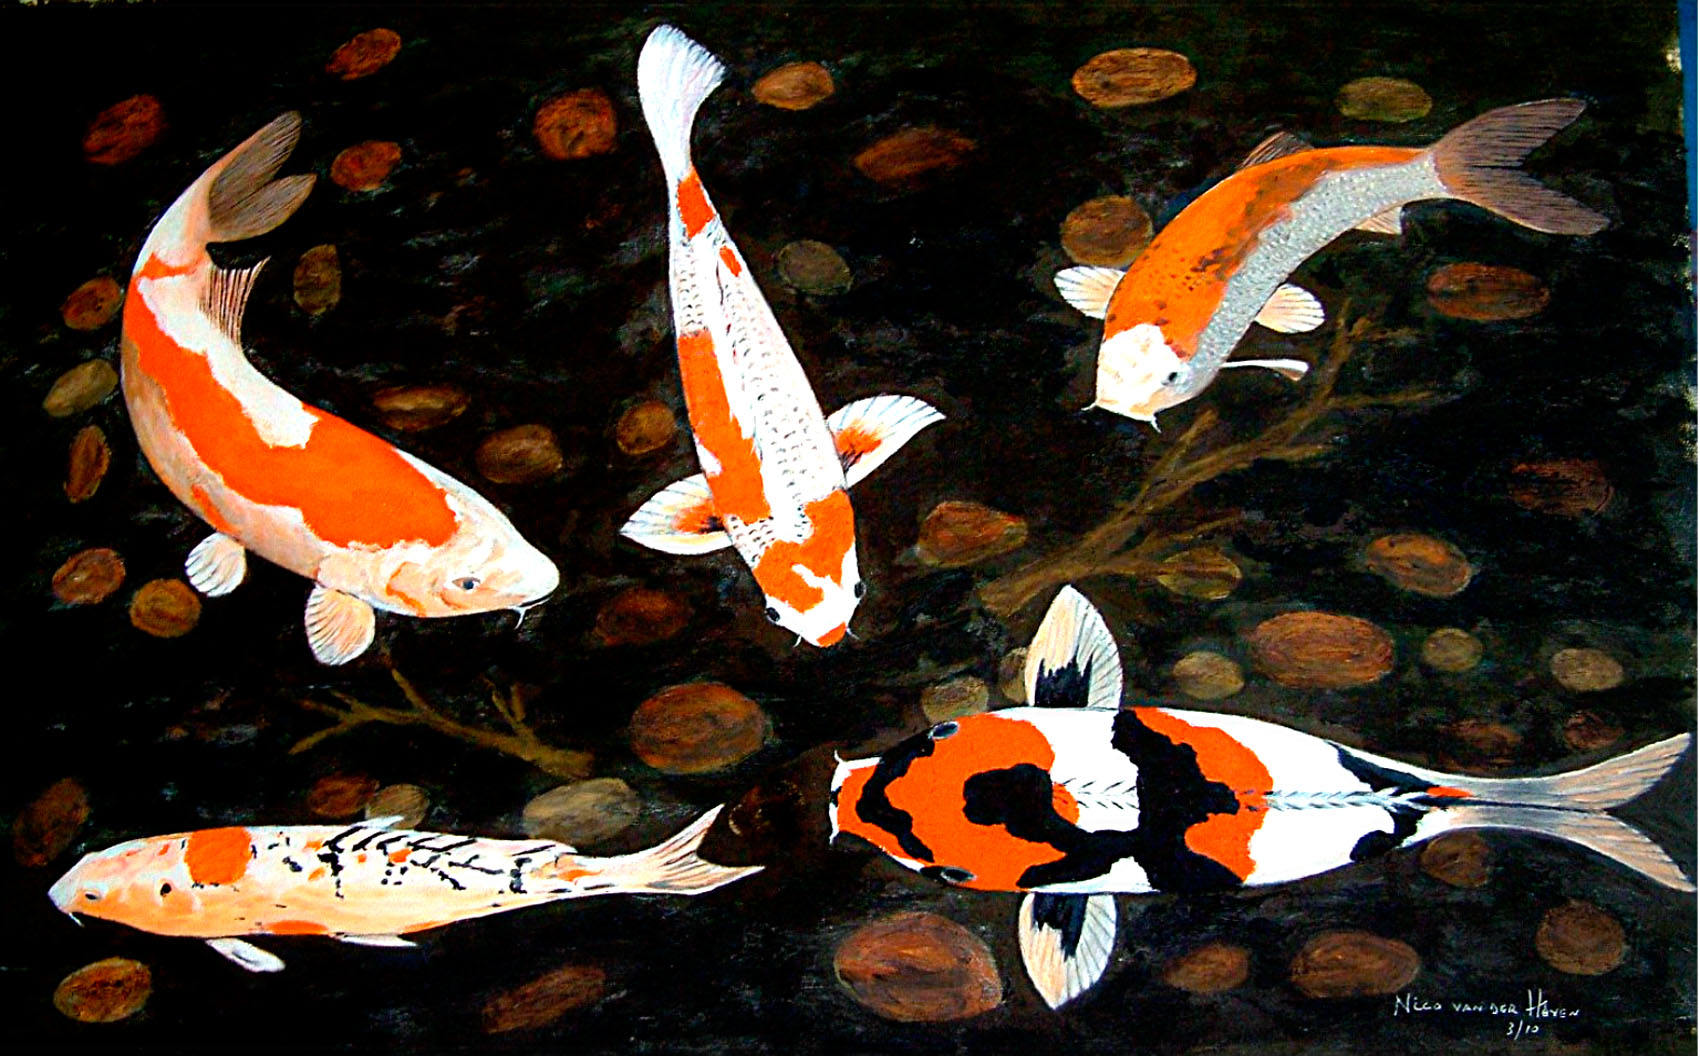 Koi fish nvdh foundmyself for Koi fish pictures